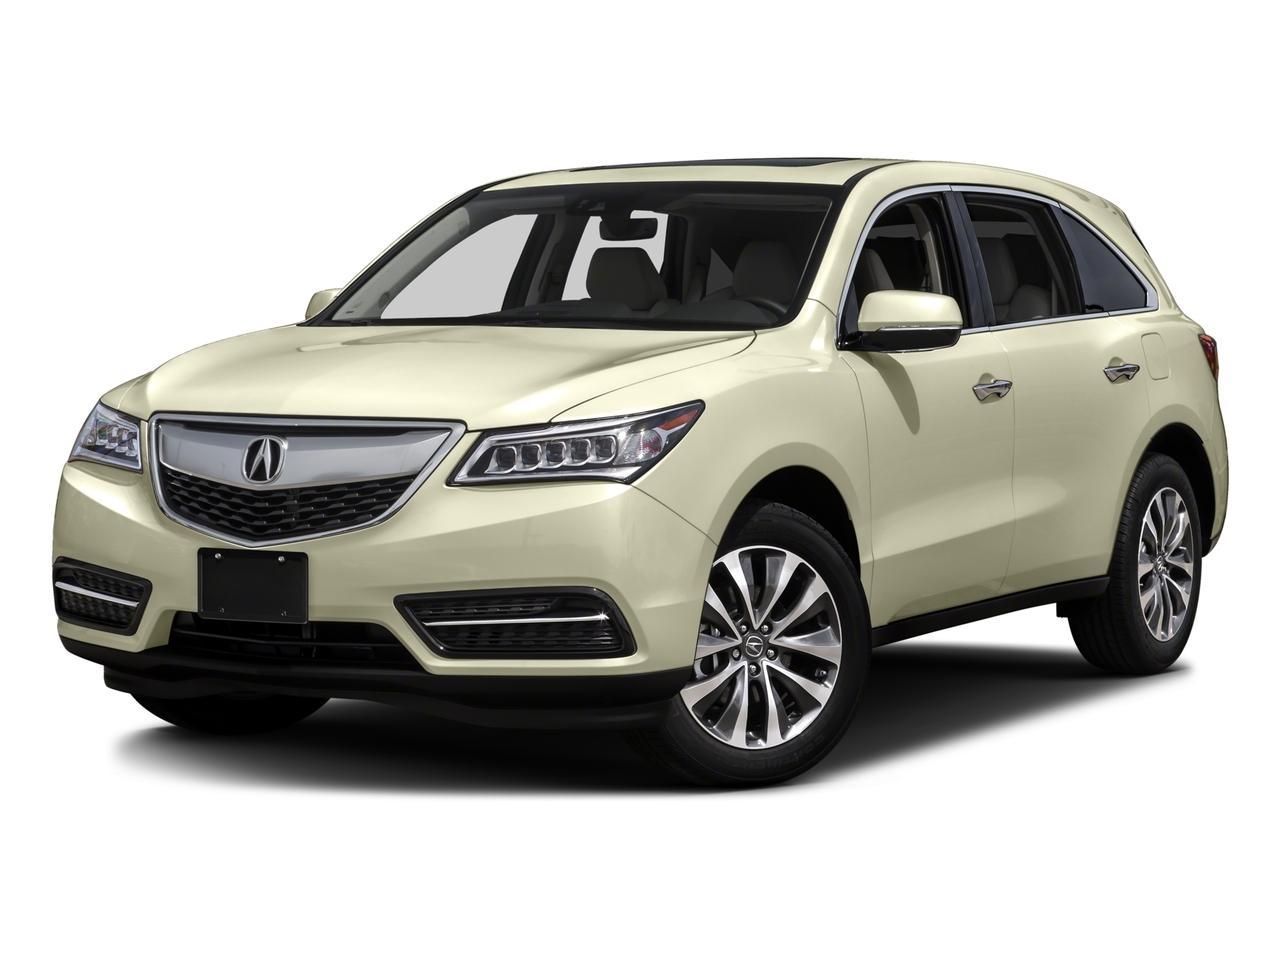 2016 Acura MDX Vehicle Photo in Fort Scott, KS 66701